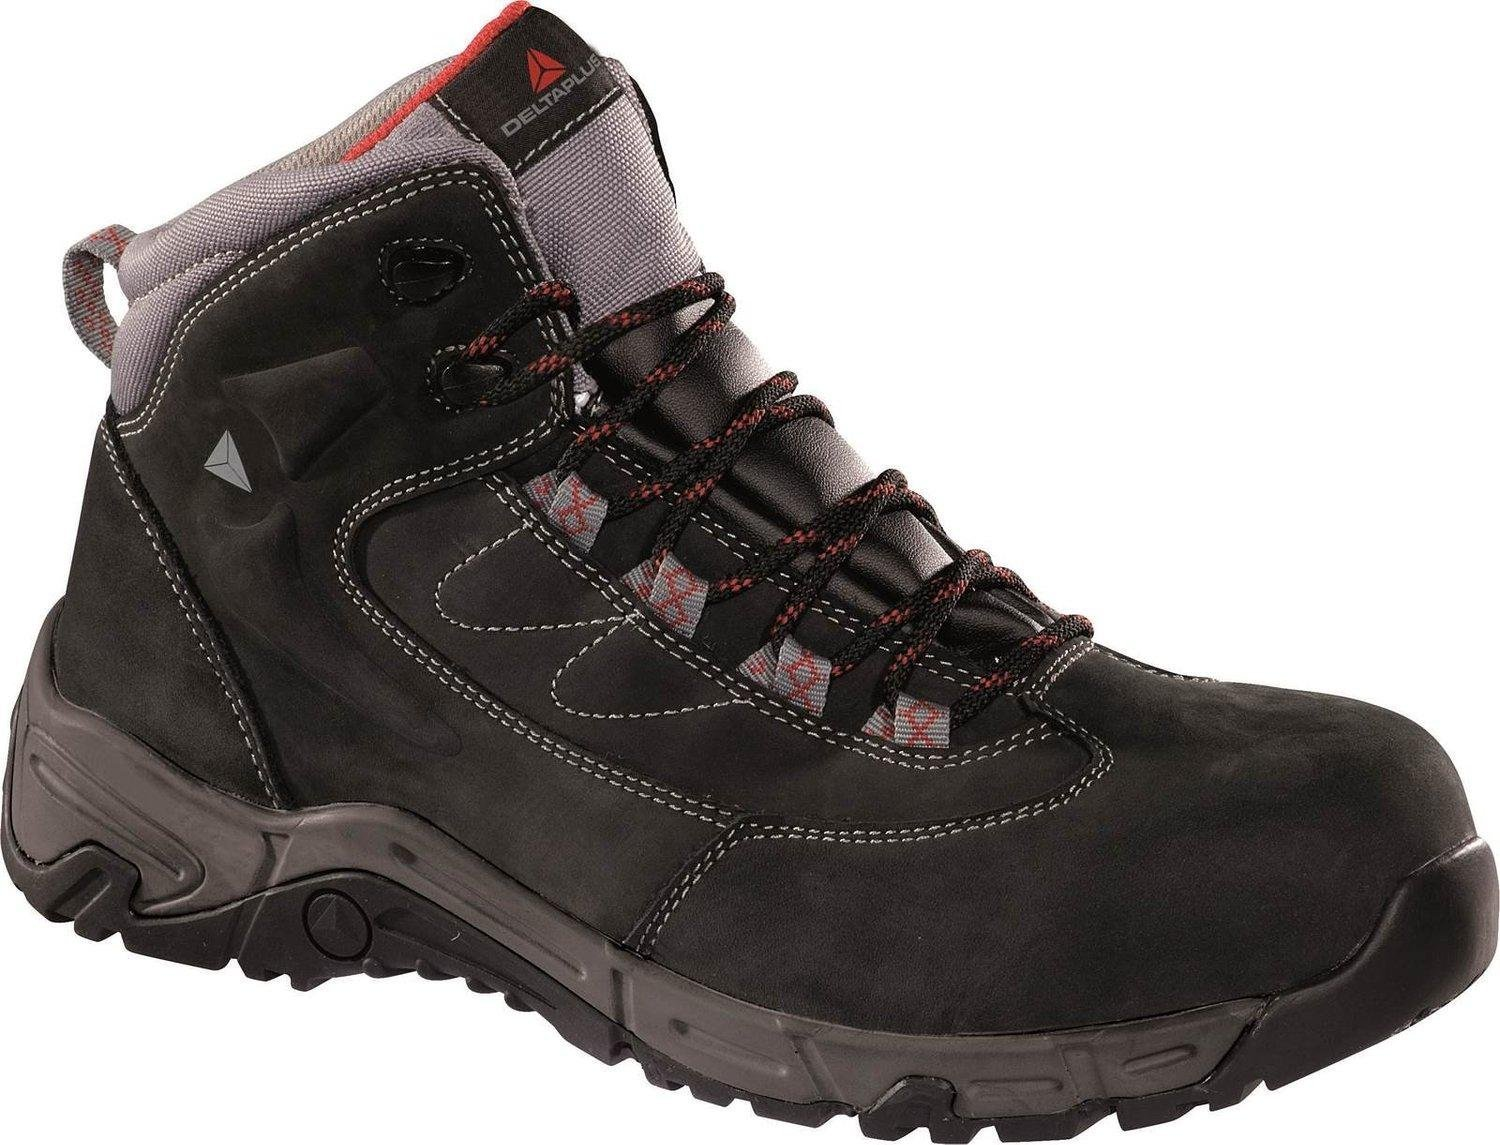 Panoply Mens Ohio 2 S3 Hro Src Work Safety Black Nubuck Leather Trainers Boots With Non Metallic Composite Toe Cap And Midsole US Size 10